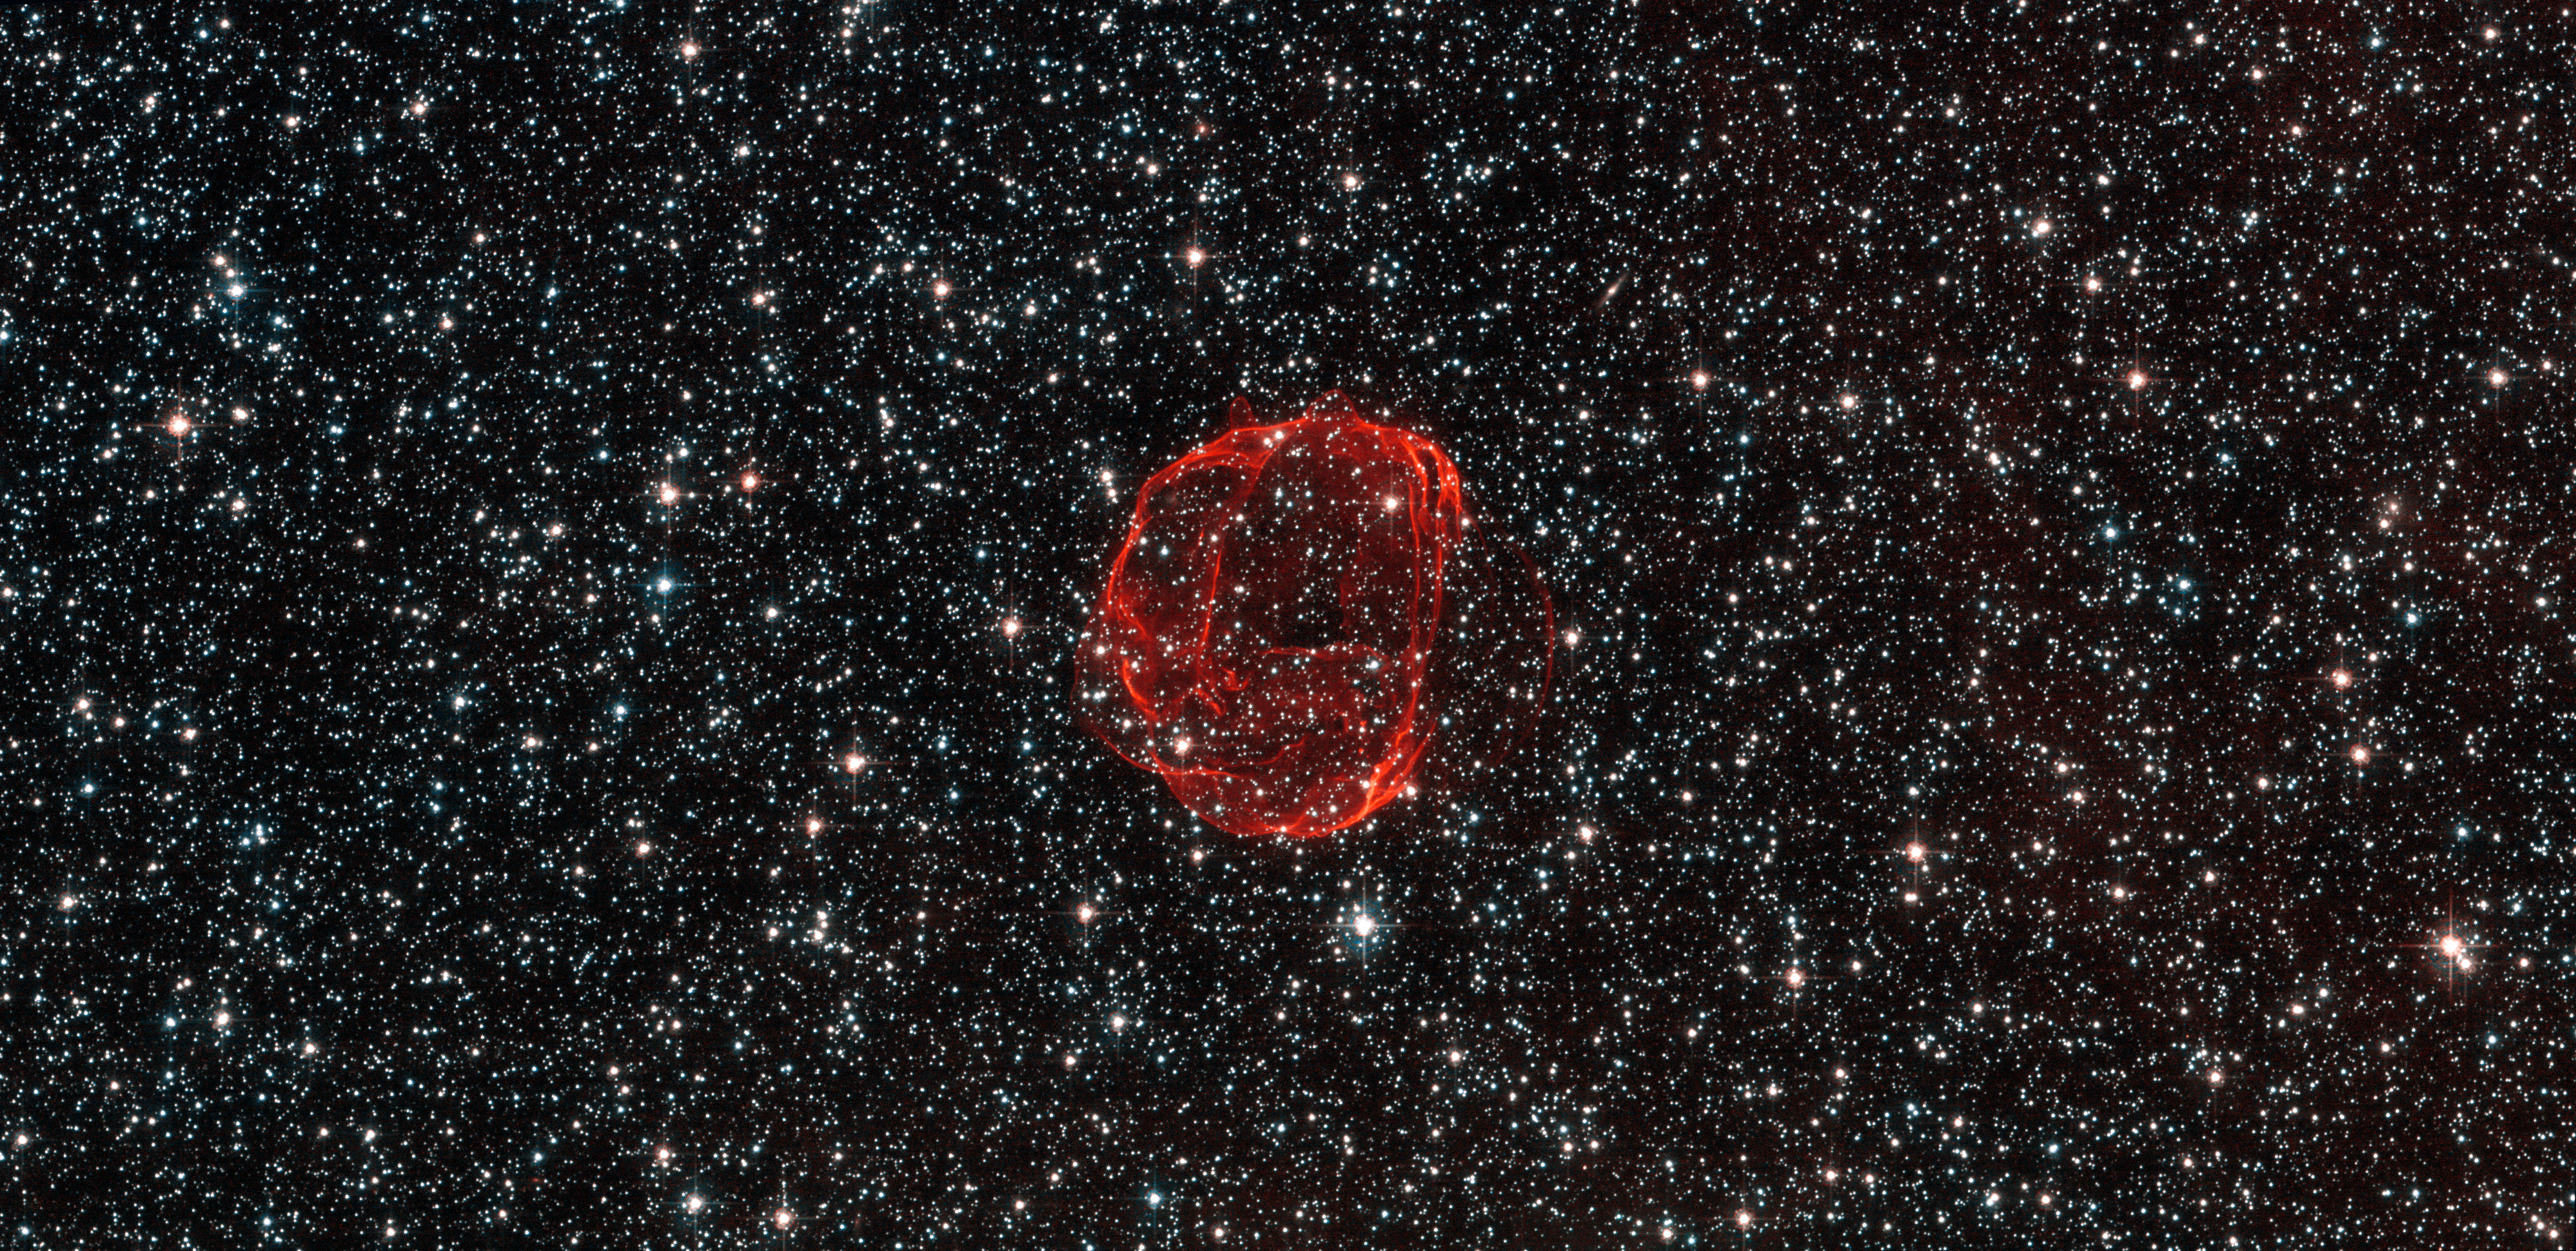 File:The remains of a star gone supernova.jpg